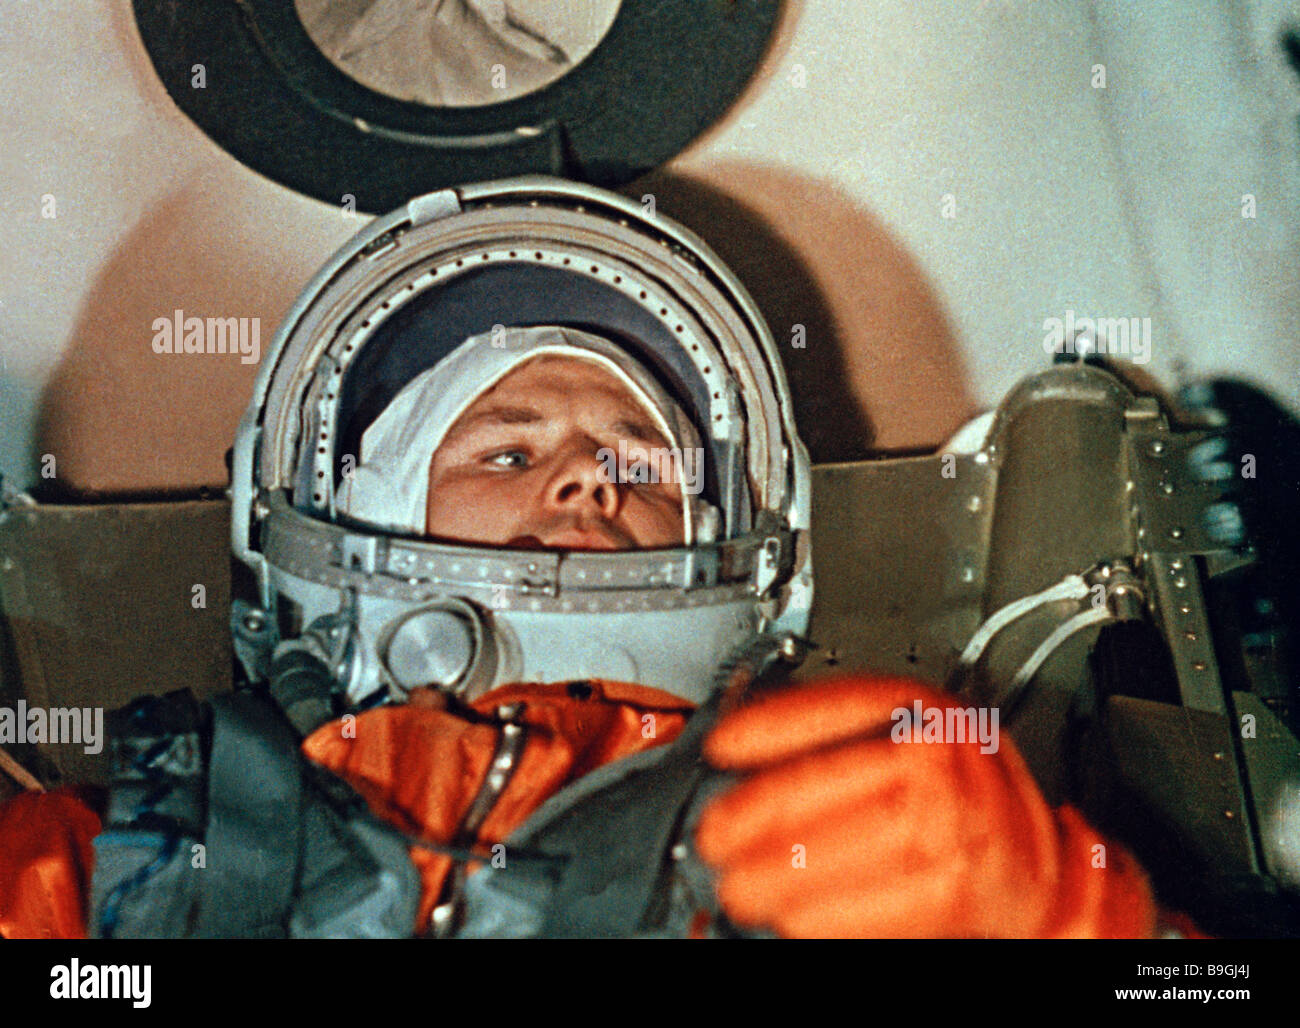 Cosmonaut Yuri Gagarin aboard Vostok 1 spacecraft from The Soviets in the Space documentary - Stock Image